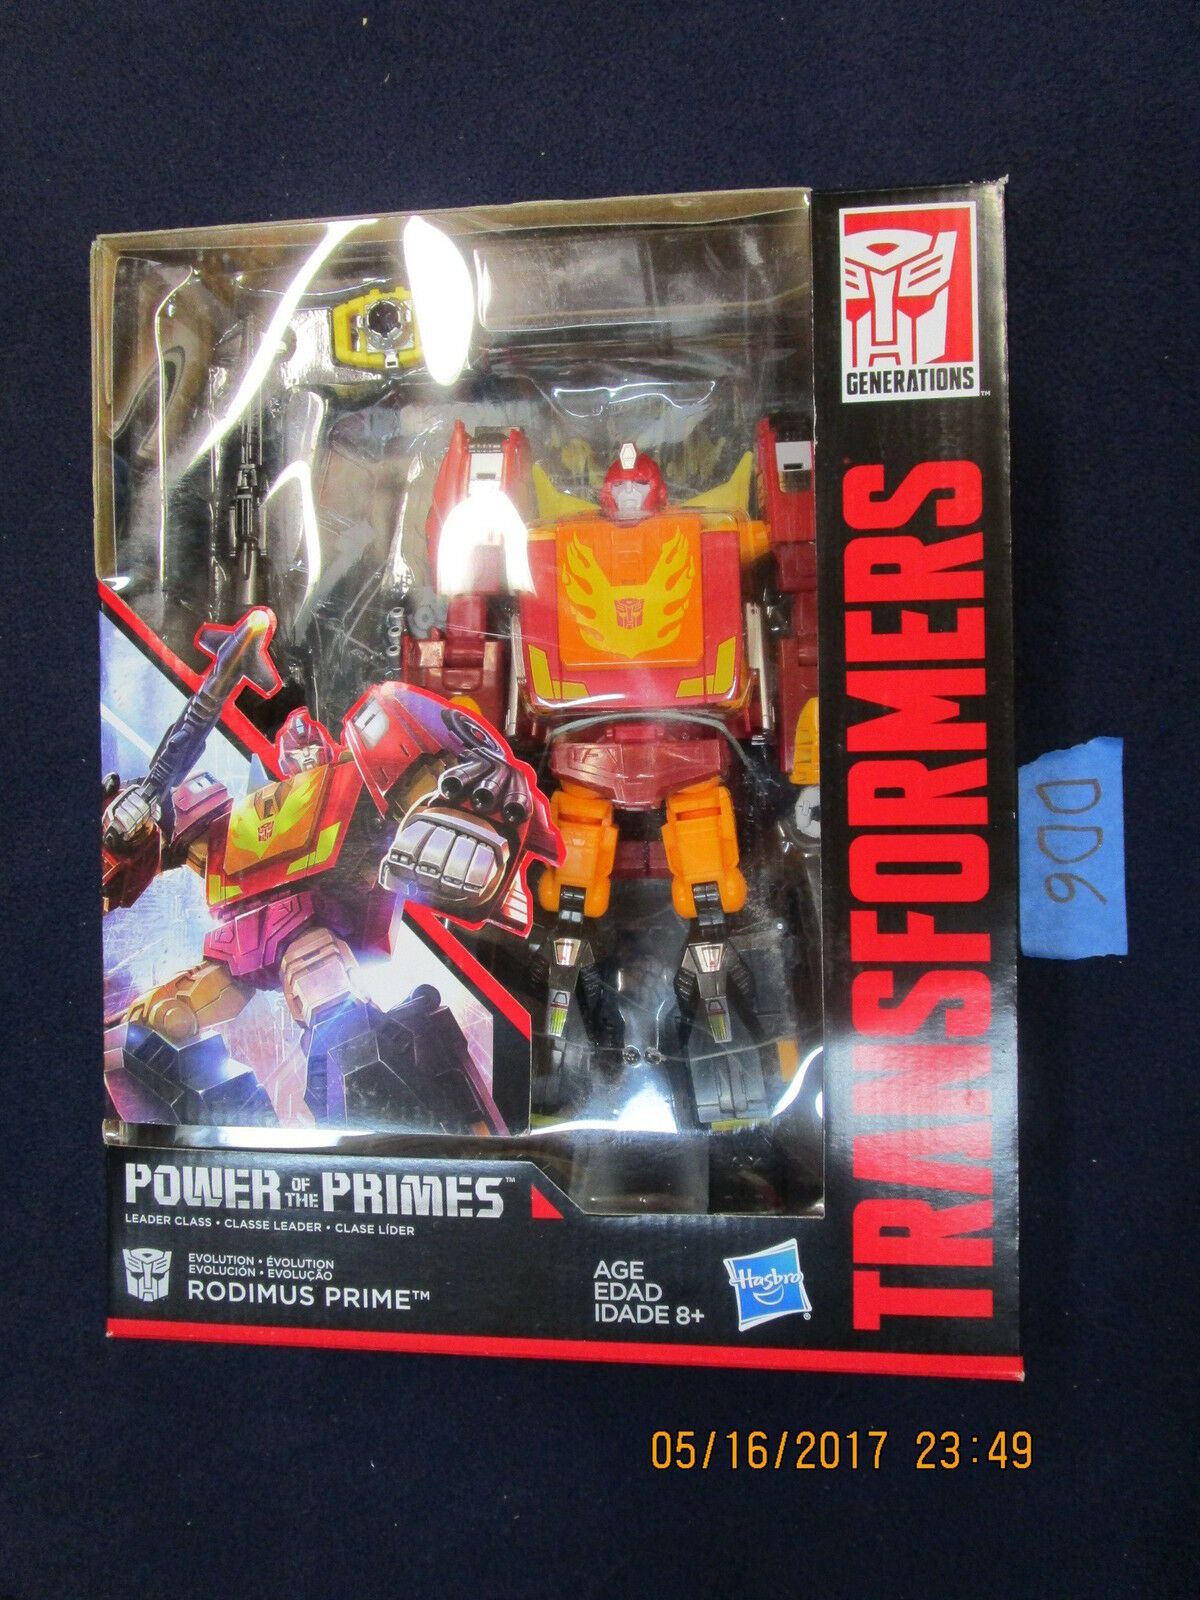 DD6 Transformers Generations Lot RODIMUS PRIME Leader Leader Leader classe energia of the Primes f91c3e